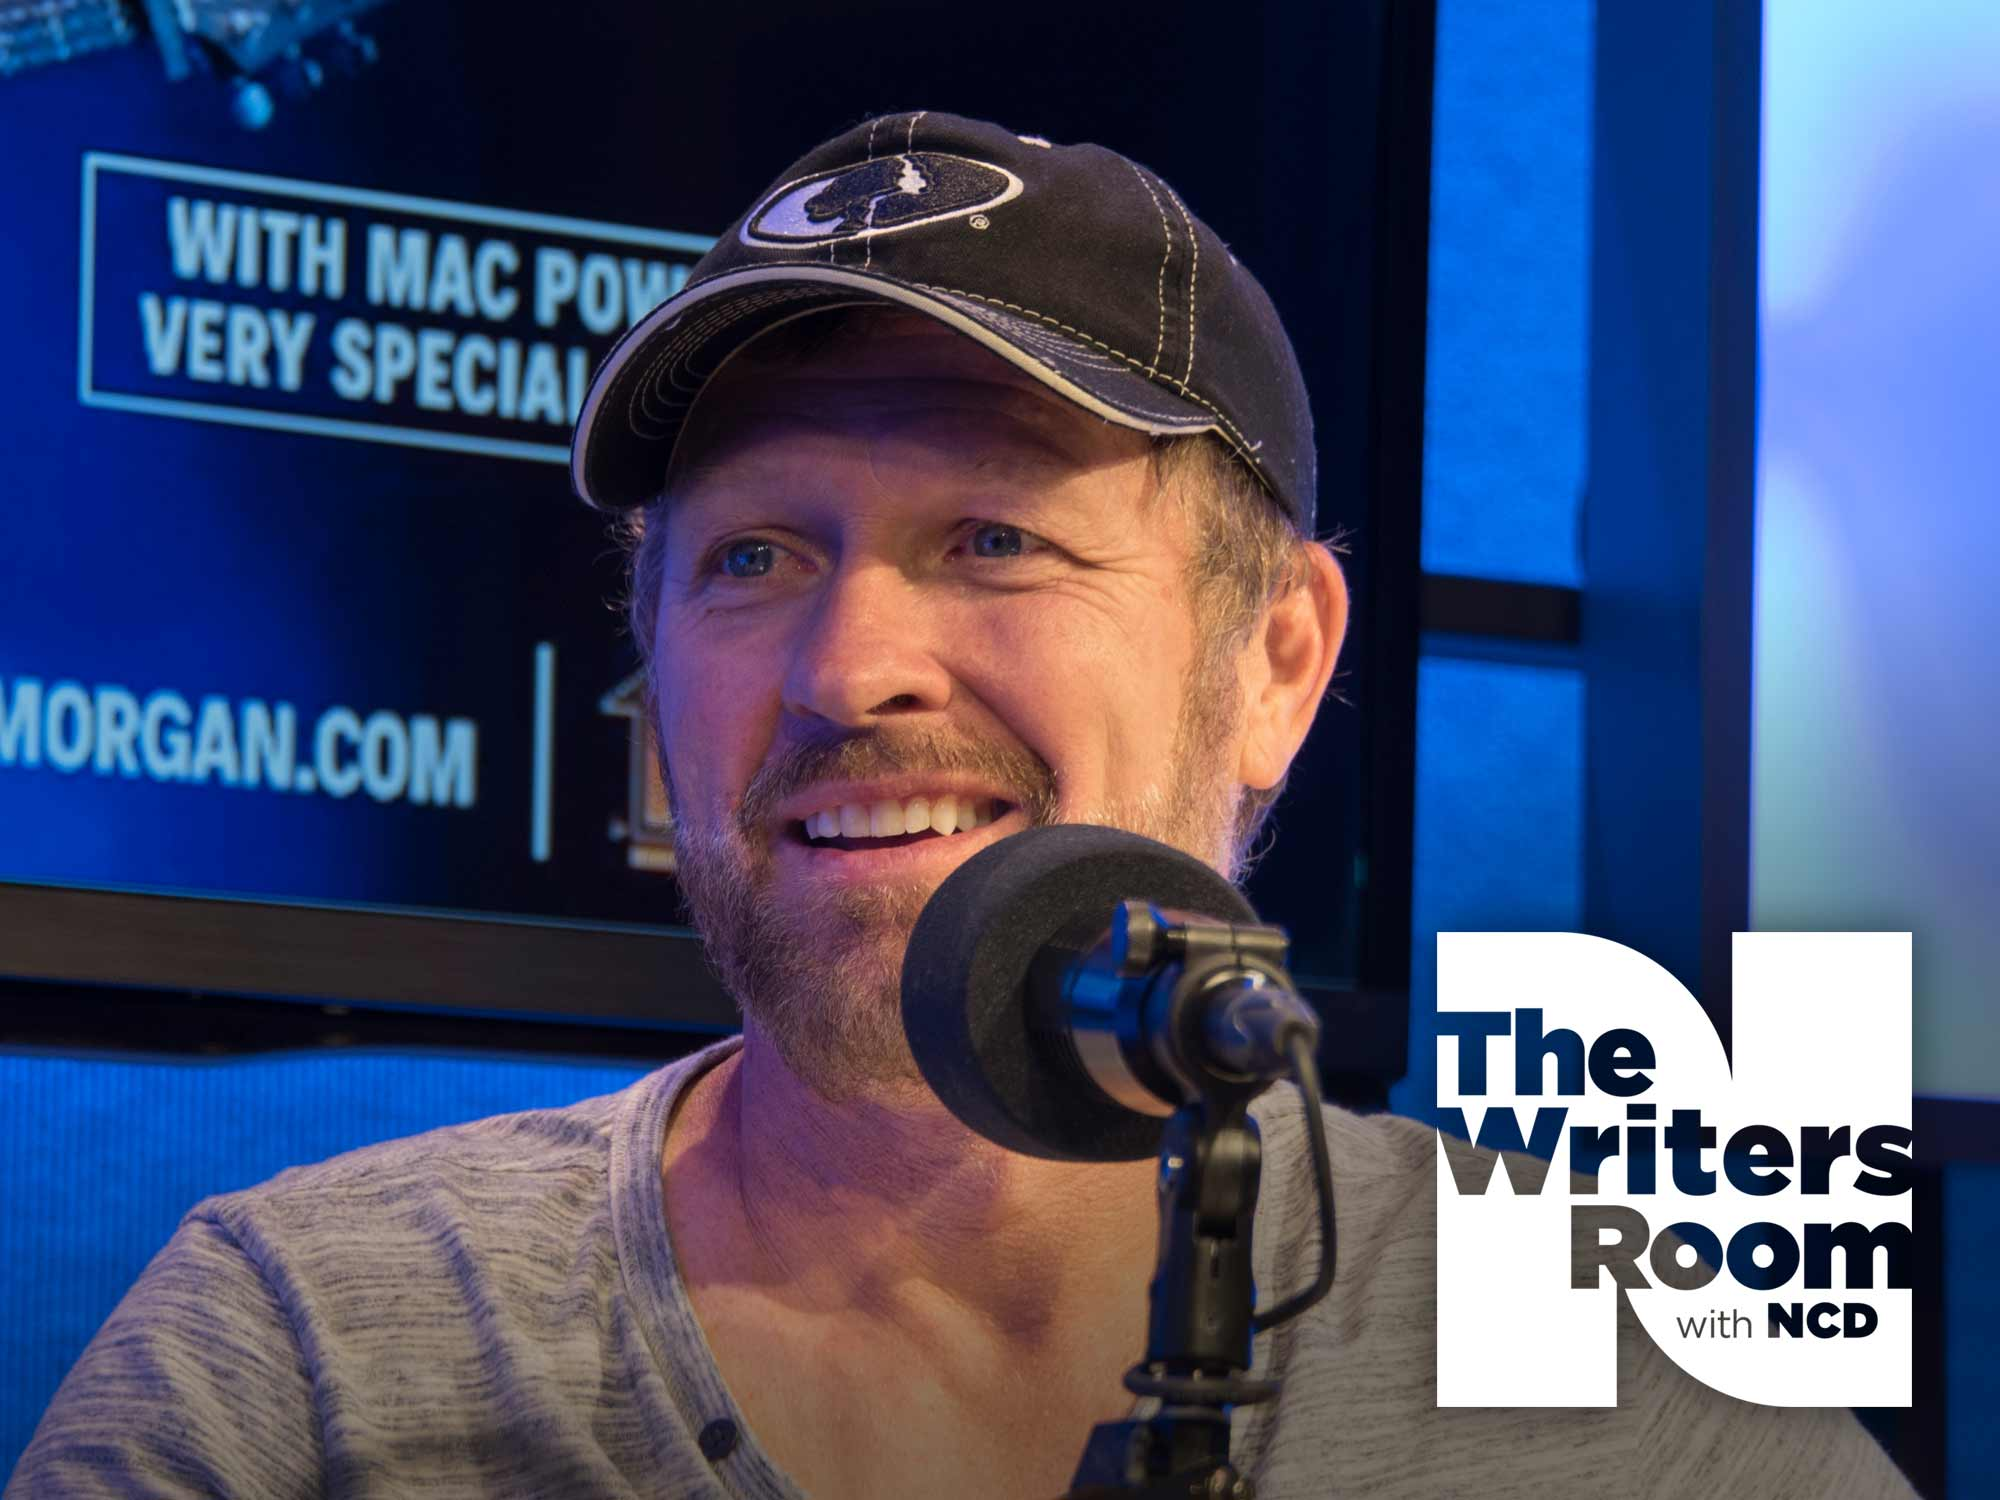 Craig Morgan Talks Hunting Bears, Performing for the Troops, Opening His New Gallery, Upcoming Tour & More